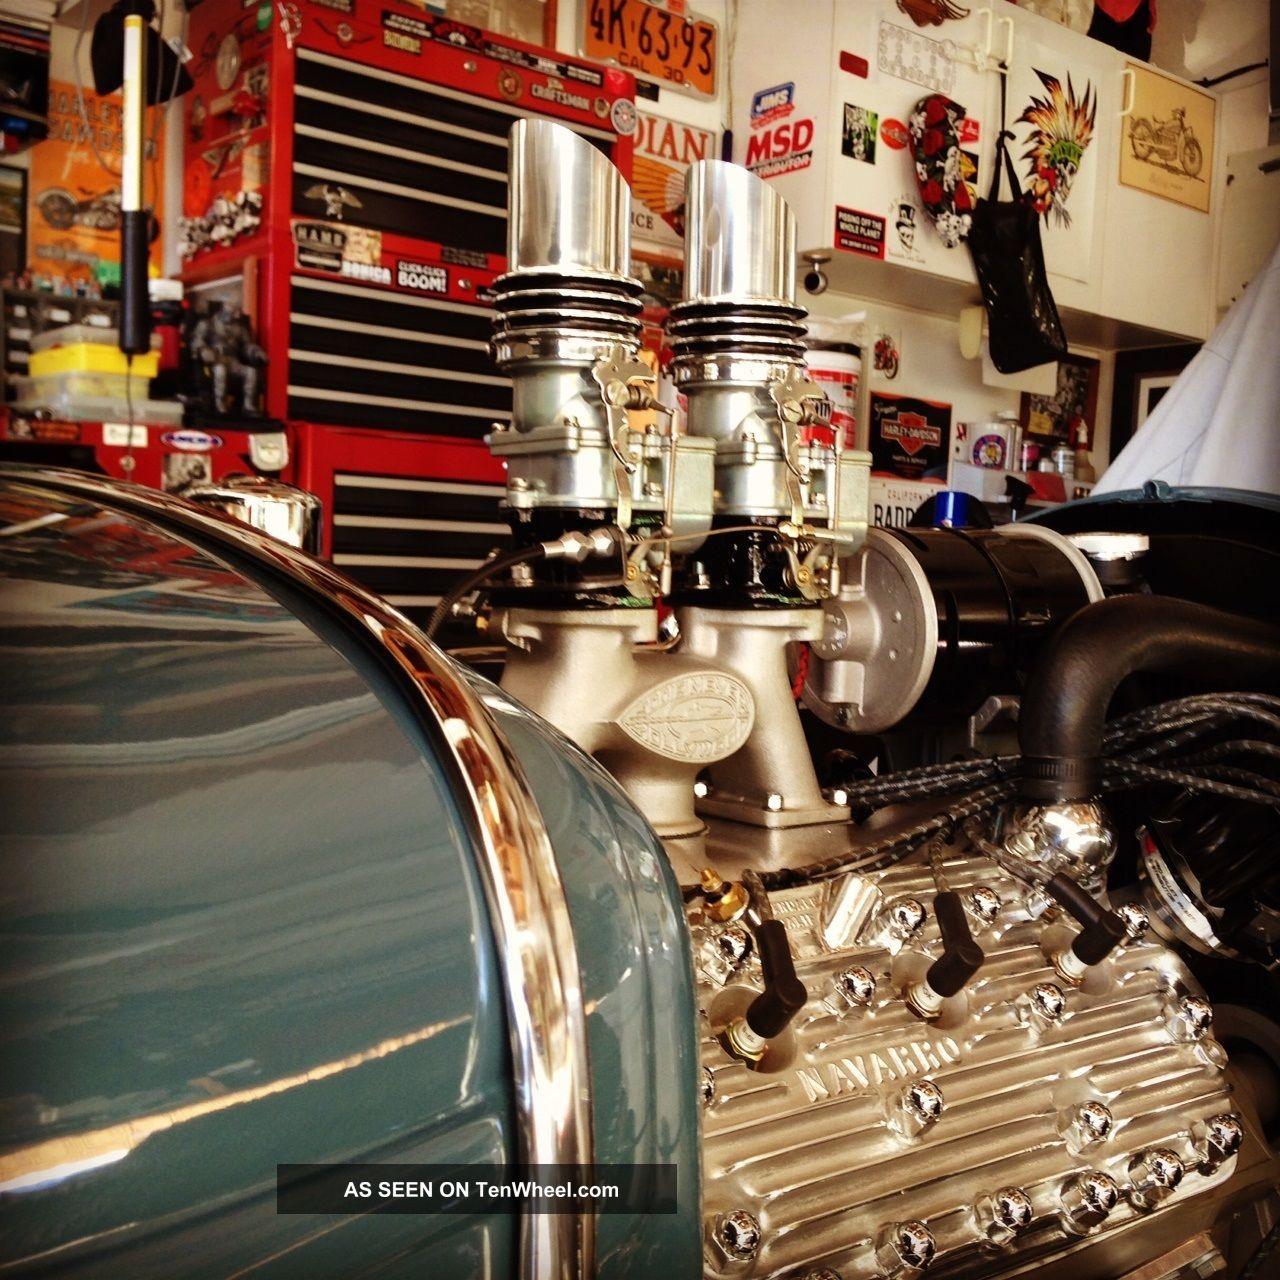 1930 Ford Model A Hot Rod Coupe Multiple Award Winner Street Rodder Top 10 Other photo